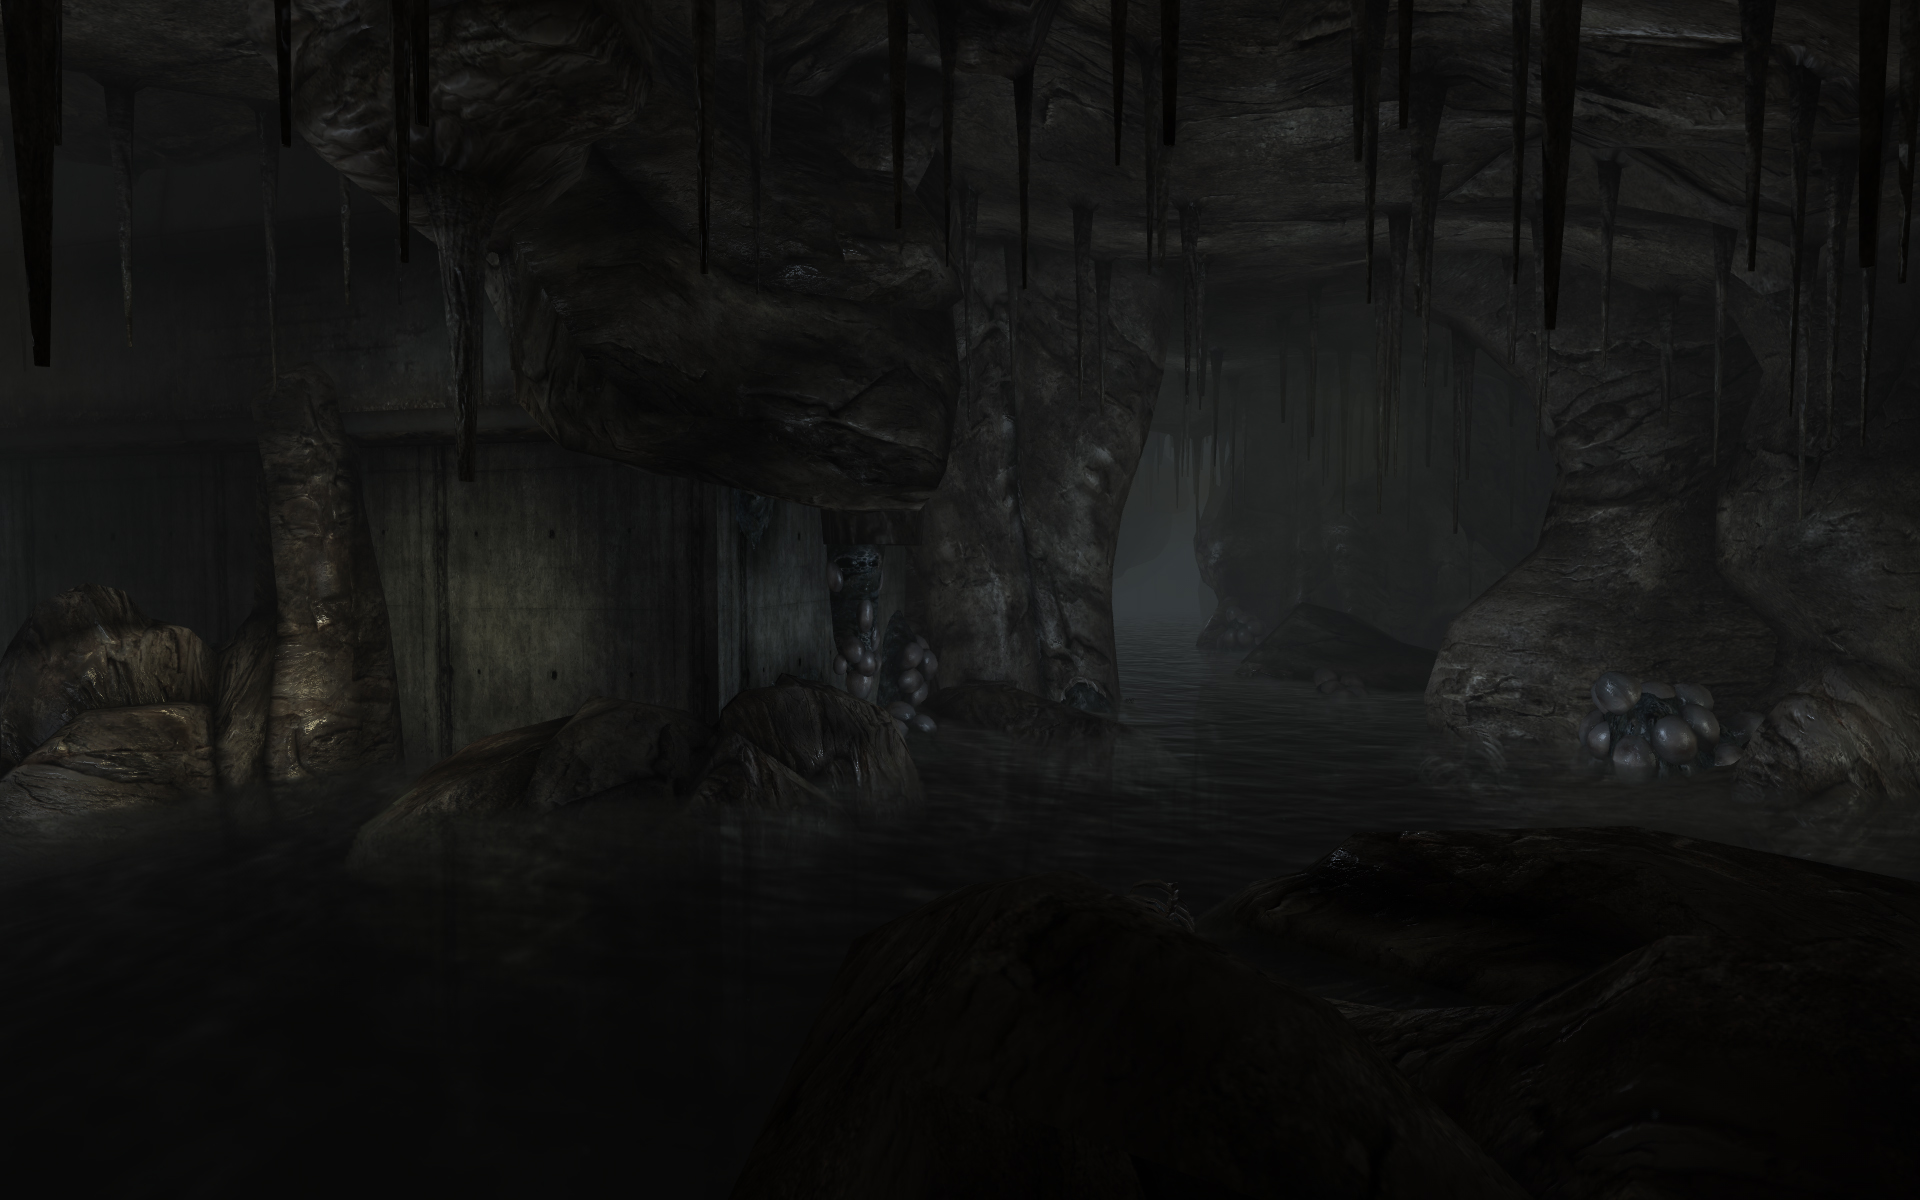 1 cavern hd wallpapers backgrounds wallpaper abyss - Dark background wallpaper hd ...